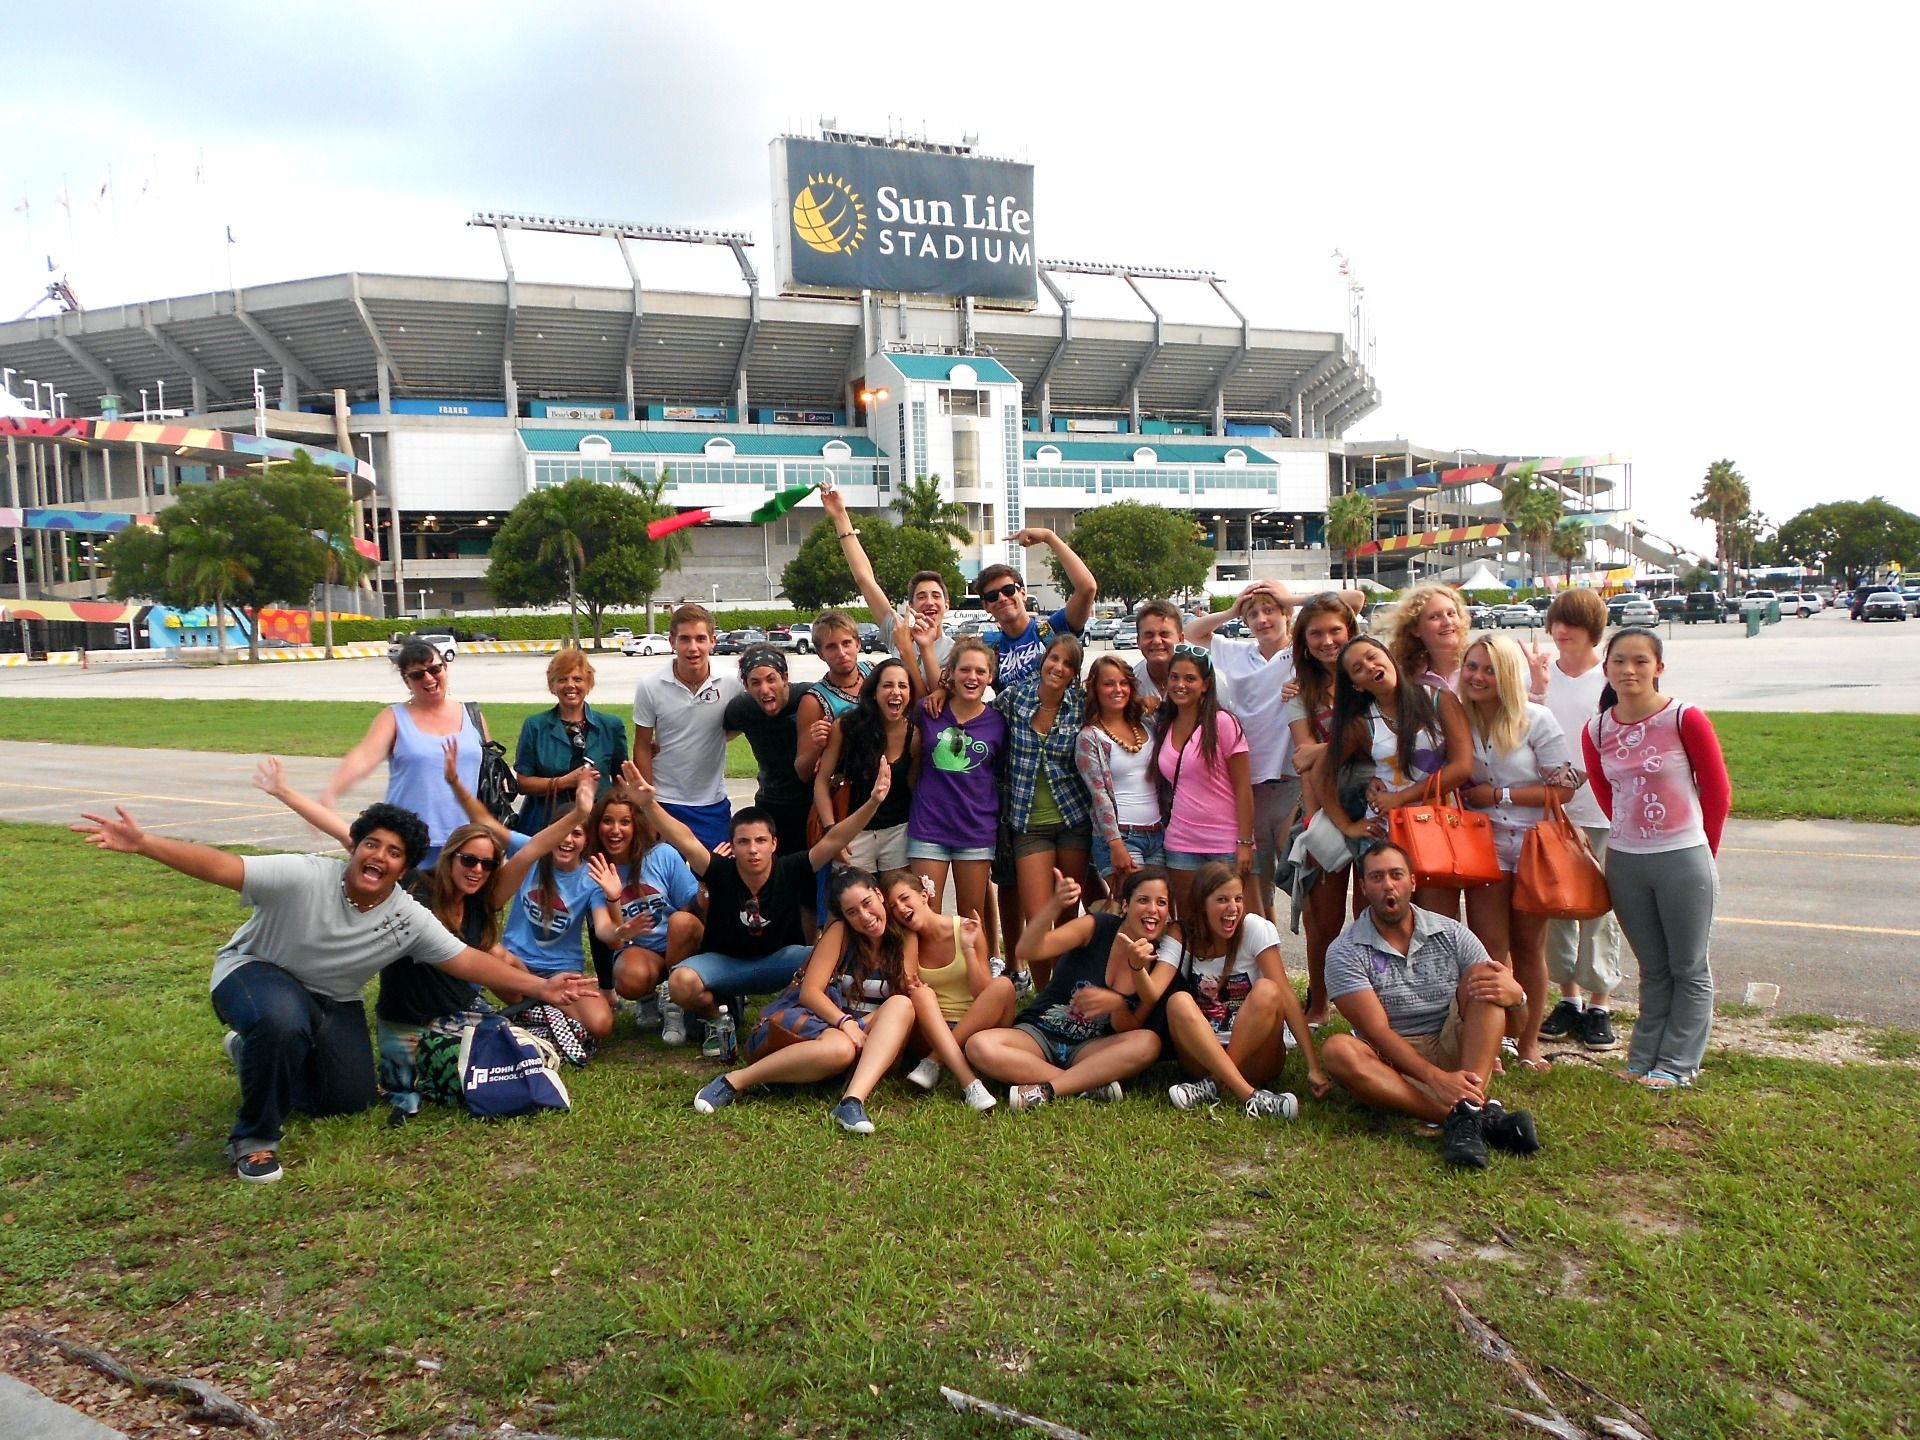 Students on activities, Miami